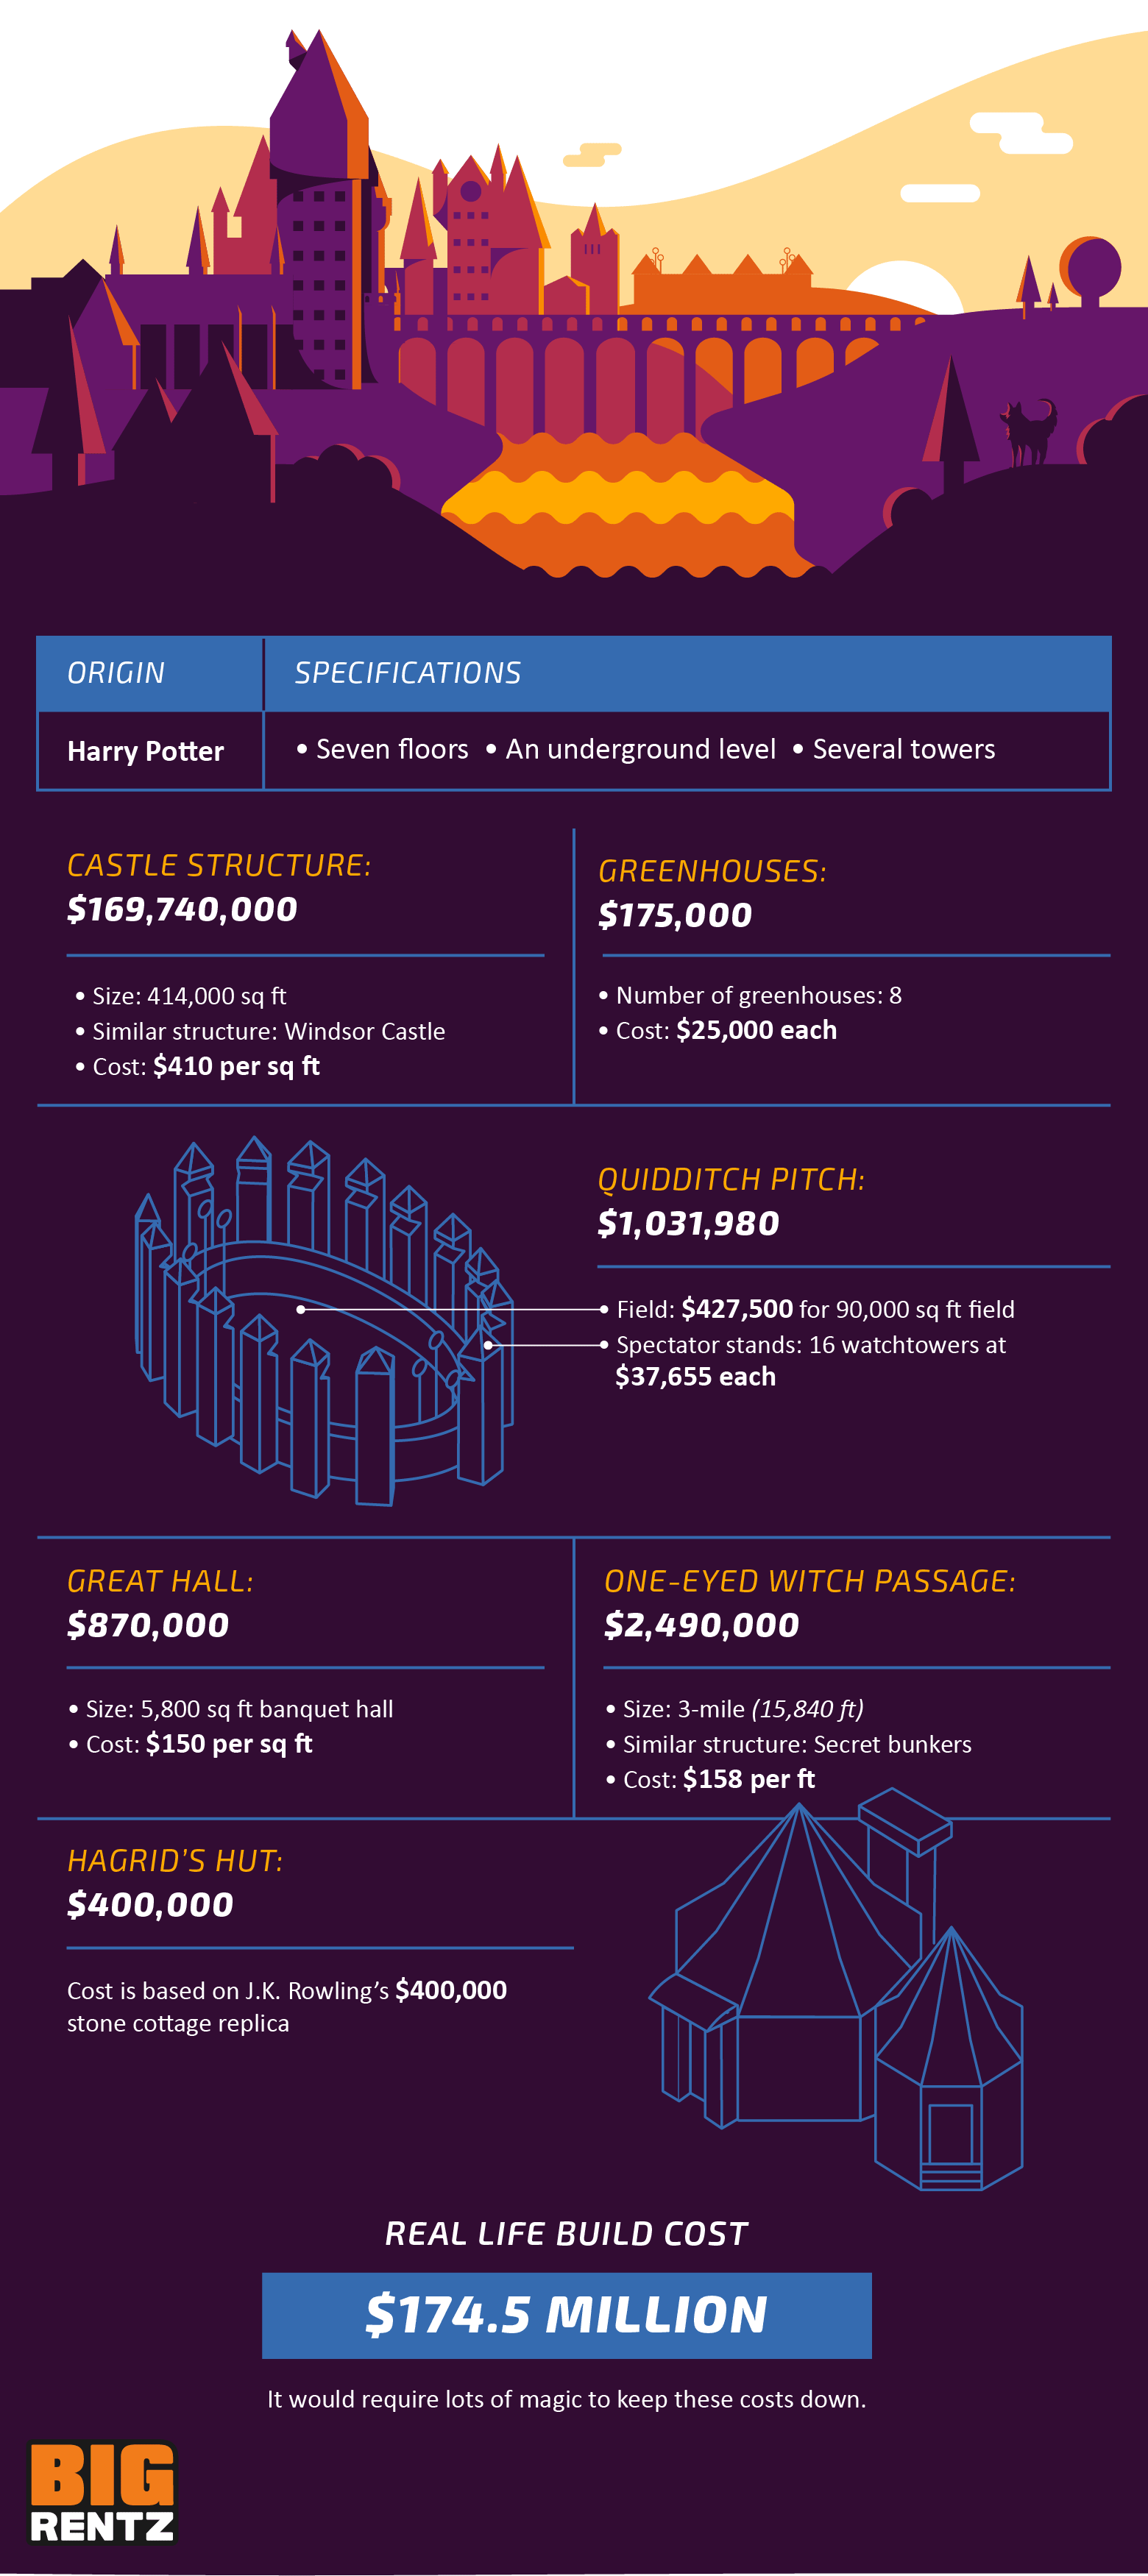 A breakdown of the costs of building the Death Star, which is estimated to be $17.5 nonillion.